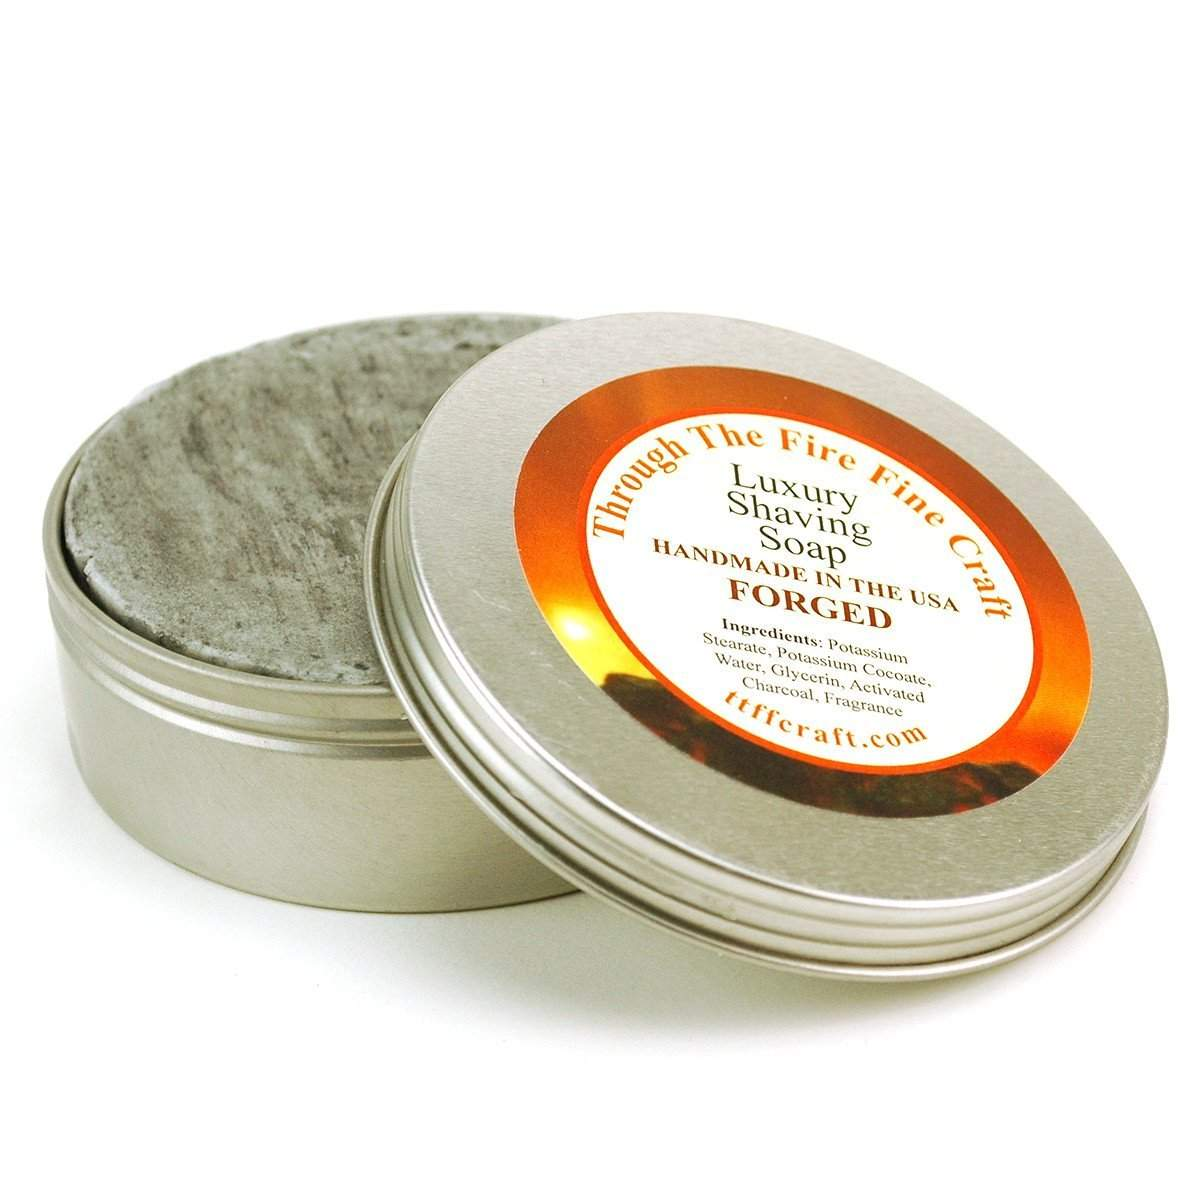 Through the Fire Luxury Shaving Soap in Reusable Tin - available in 6 scents-